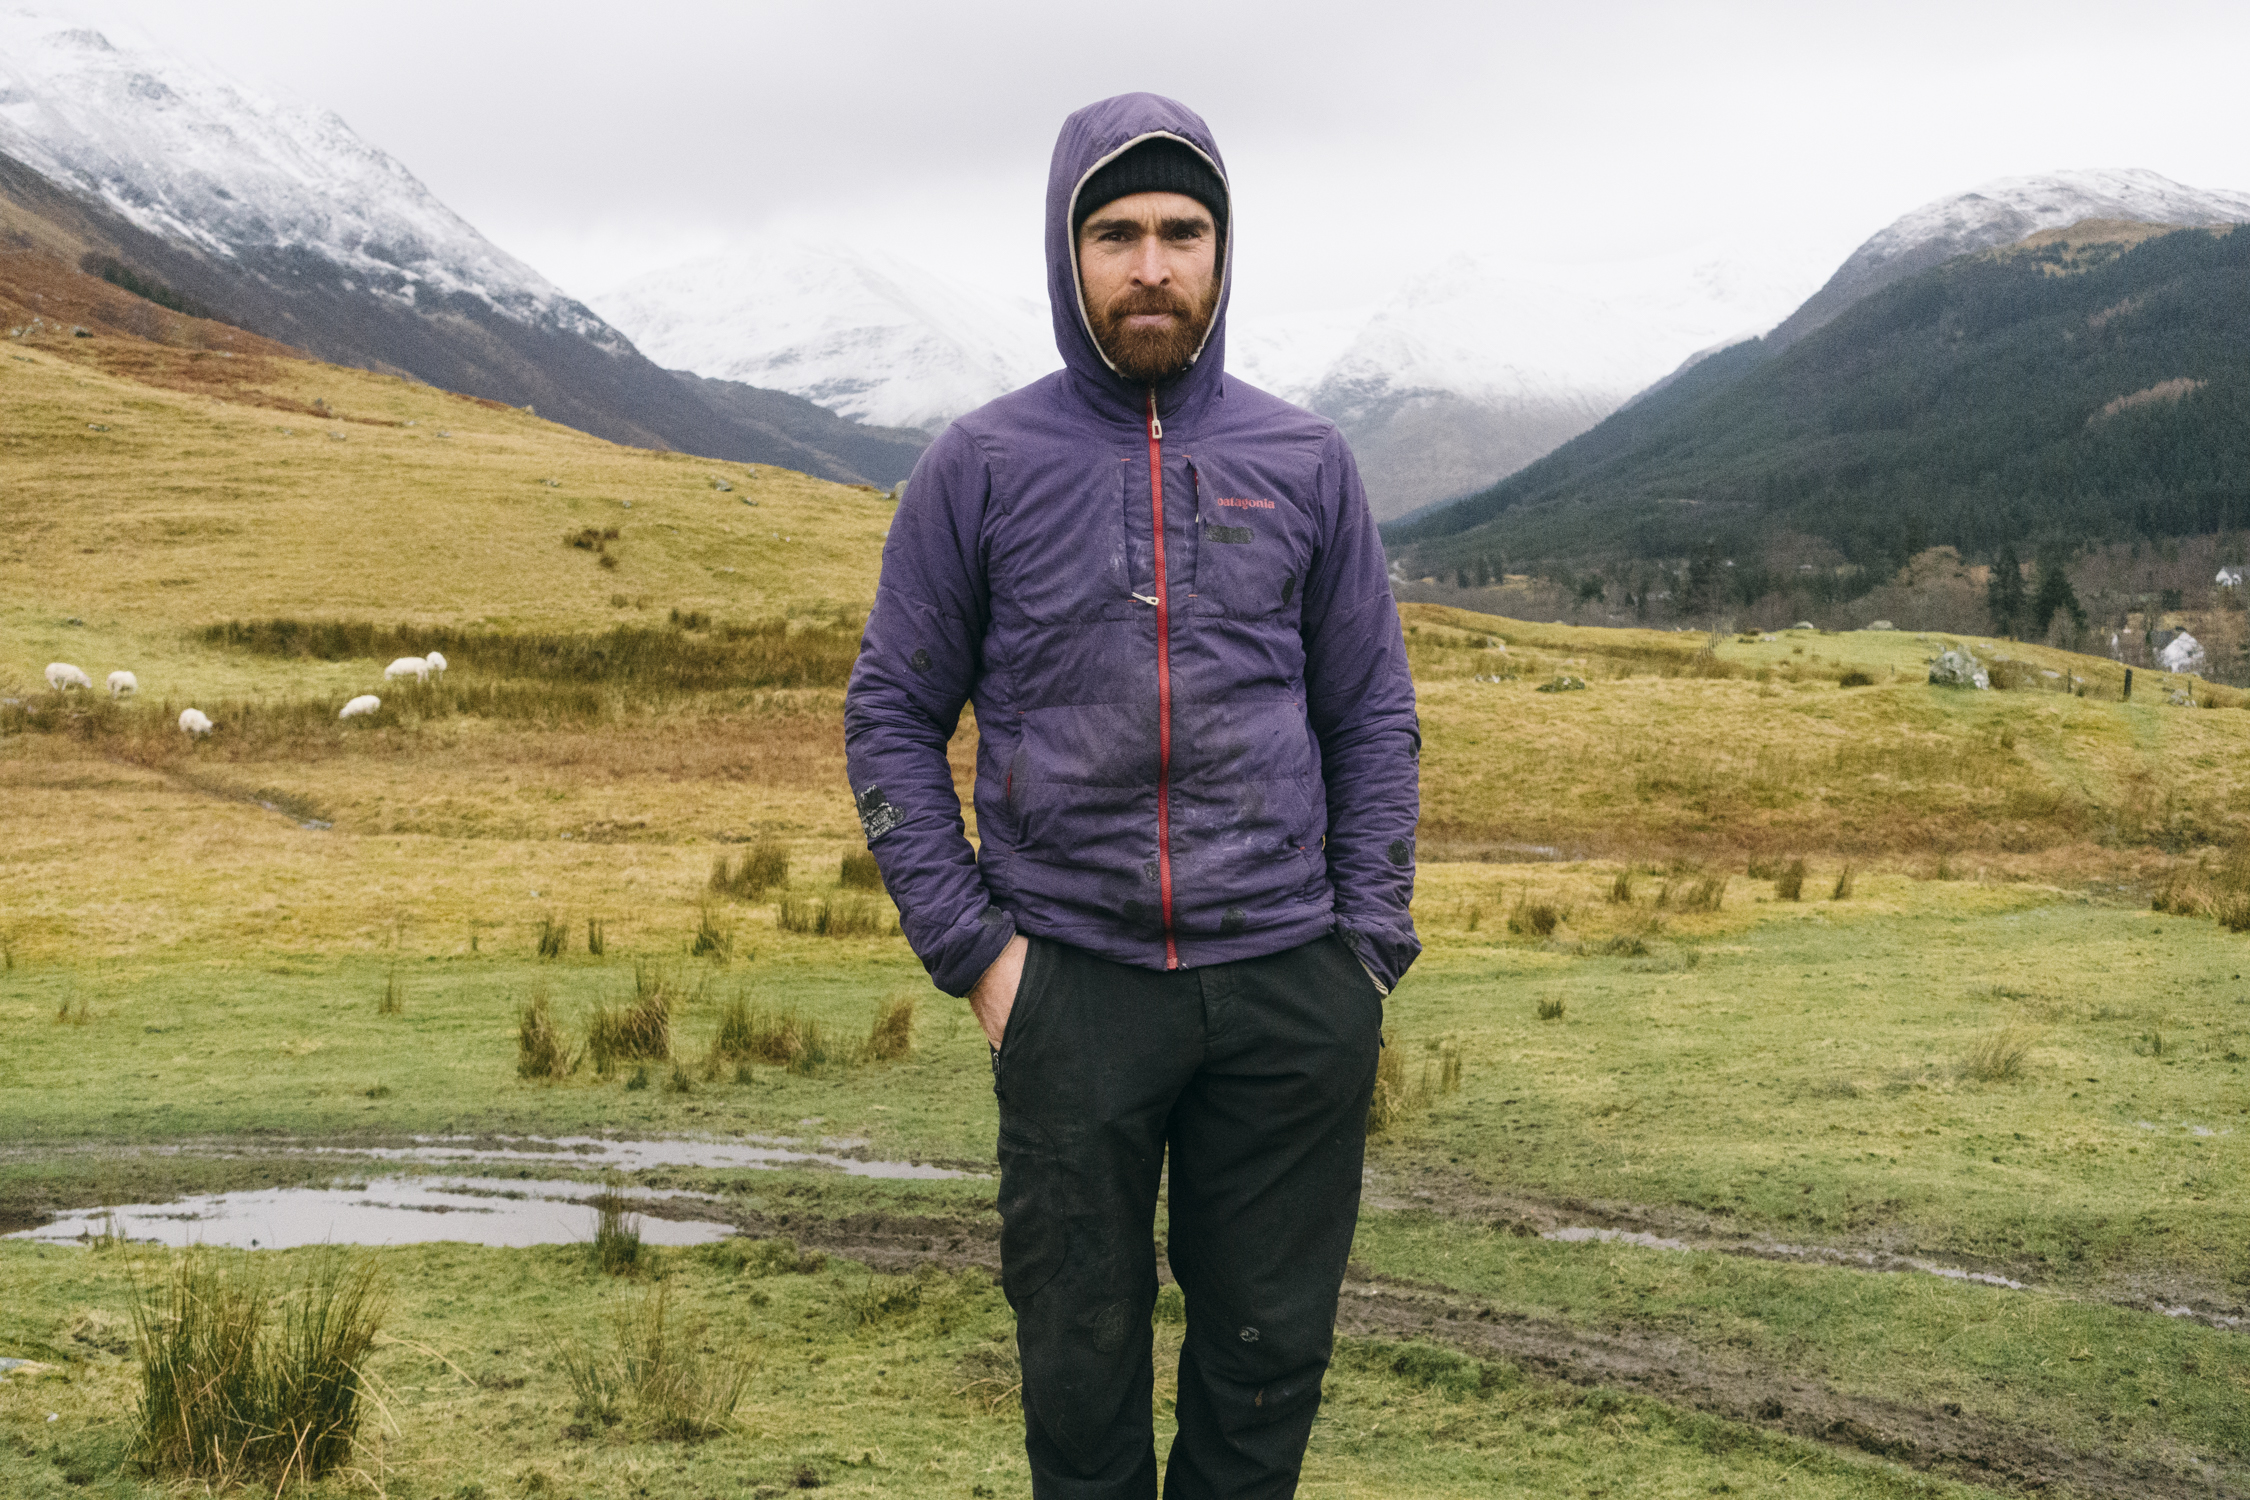 Sean Villanueva O'Driscoll on set in Northern Scotland for the next Worn Wear Film.